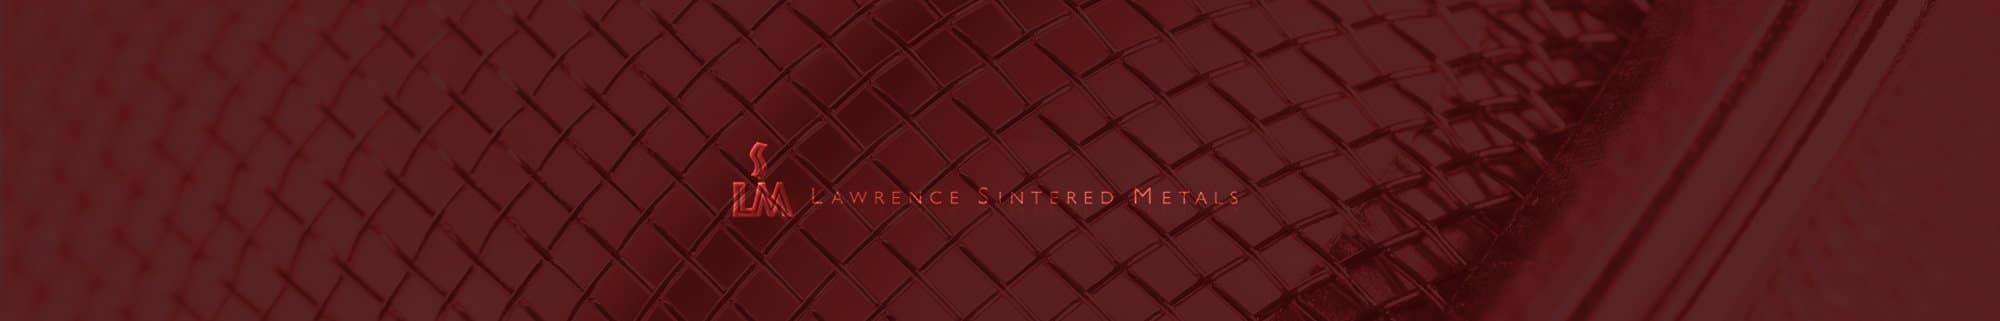 lawrence sintered metals